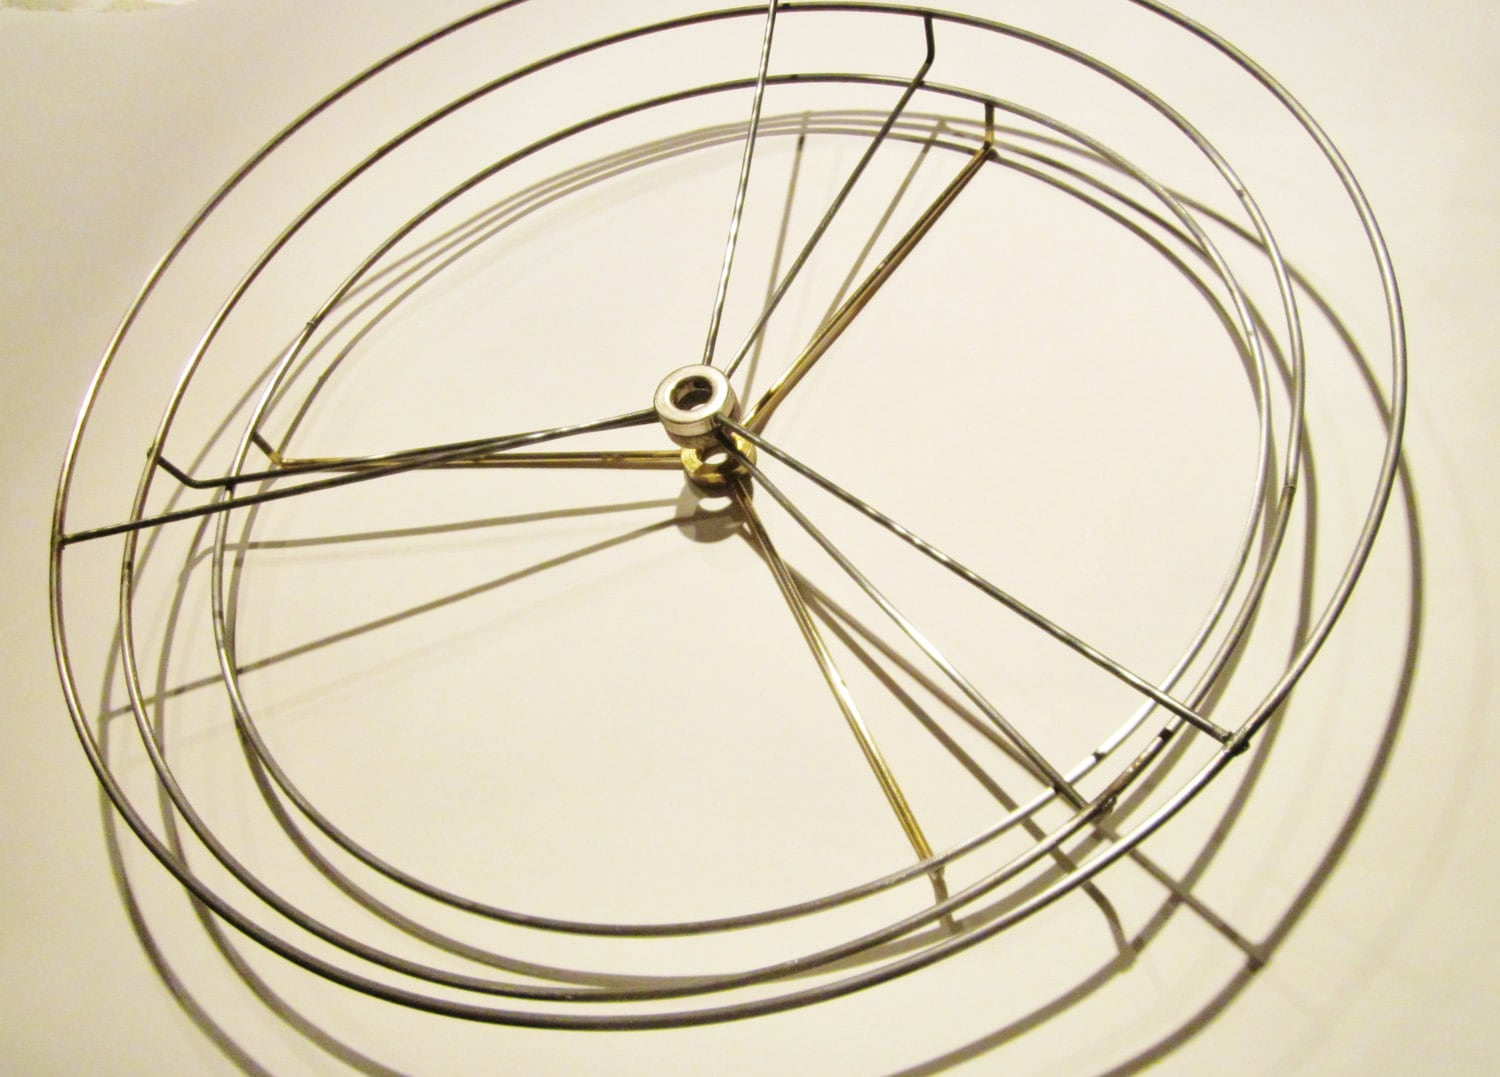 Wire lampshade rings wire center lamp shade hardware diy drum lamp shade washer top fitting lamp rh etsystudio com lampshade wire rings uk square lamp shade wire rings greentooth Gallery